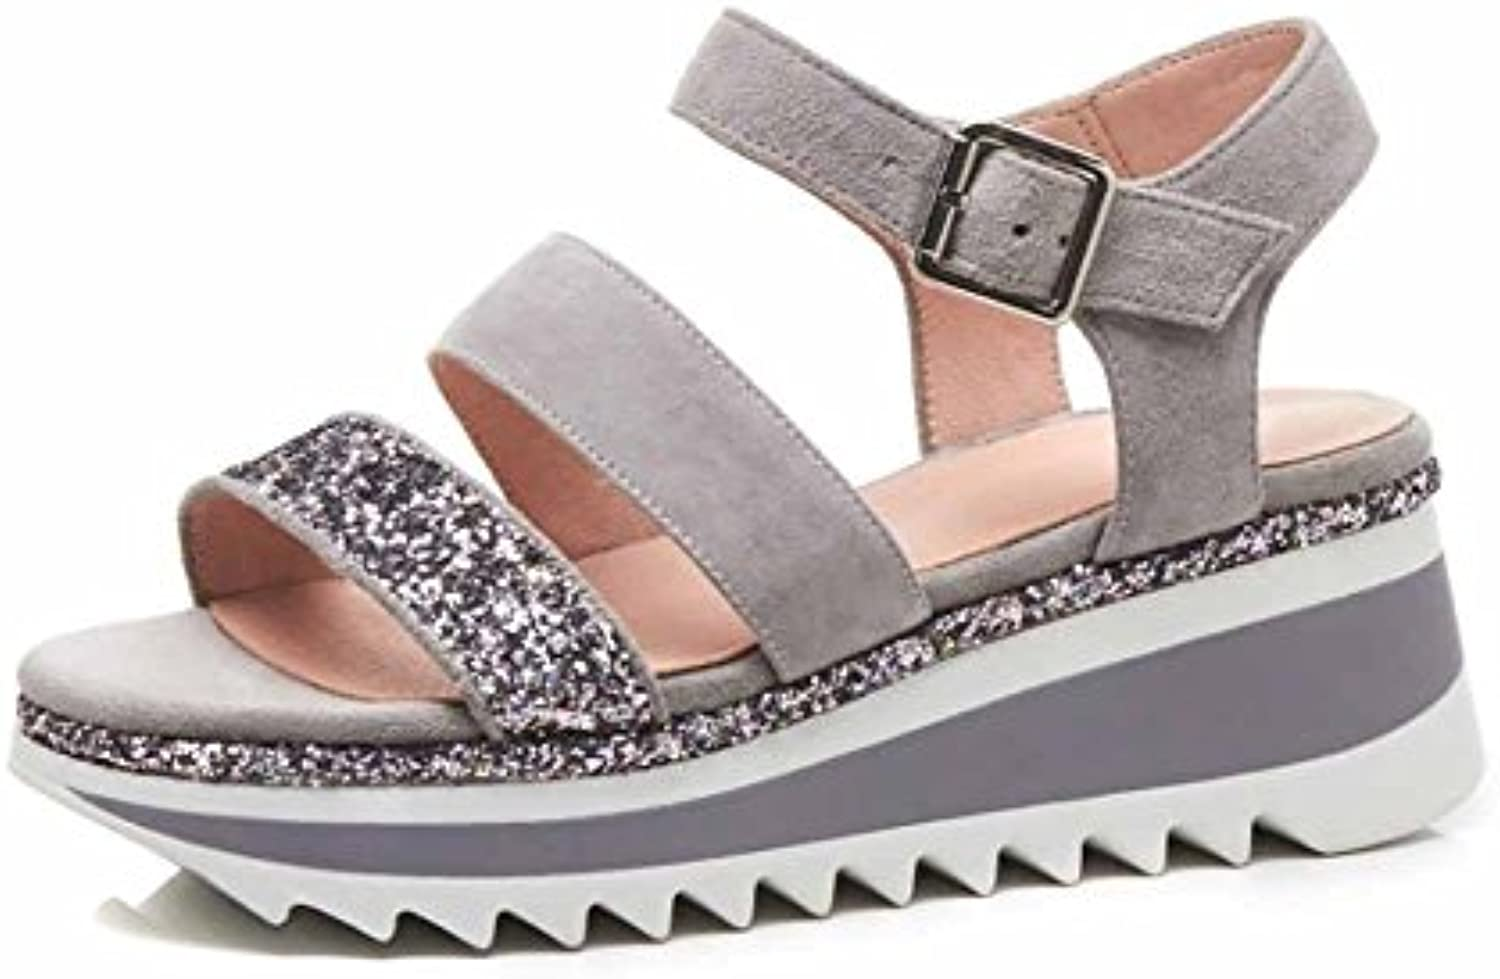 846bcb147453 Women Wedge Platform Sandals 2018 2018 2018 Summer Thick-soled Open Toe  Sandals Non-Slip Waterproof Leather Genuine Casual... B07DHSKCWH Parent  a328ab